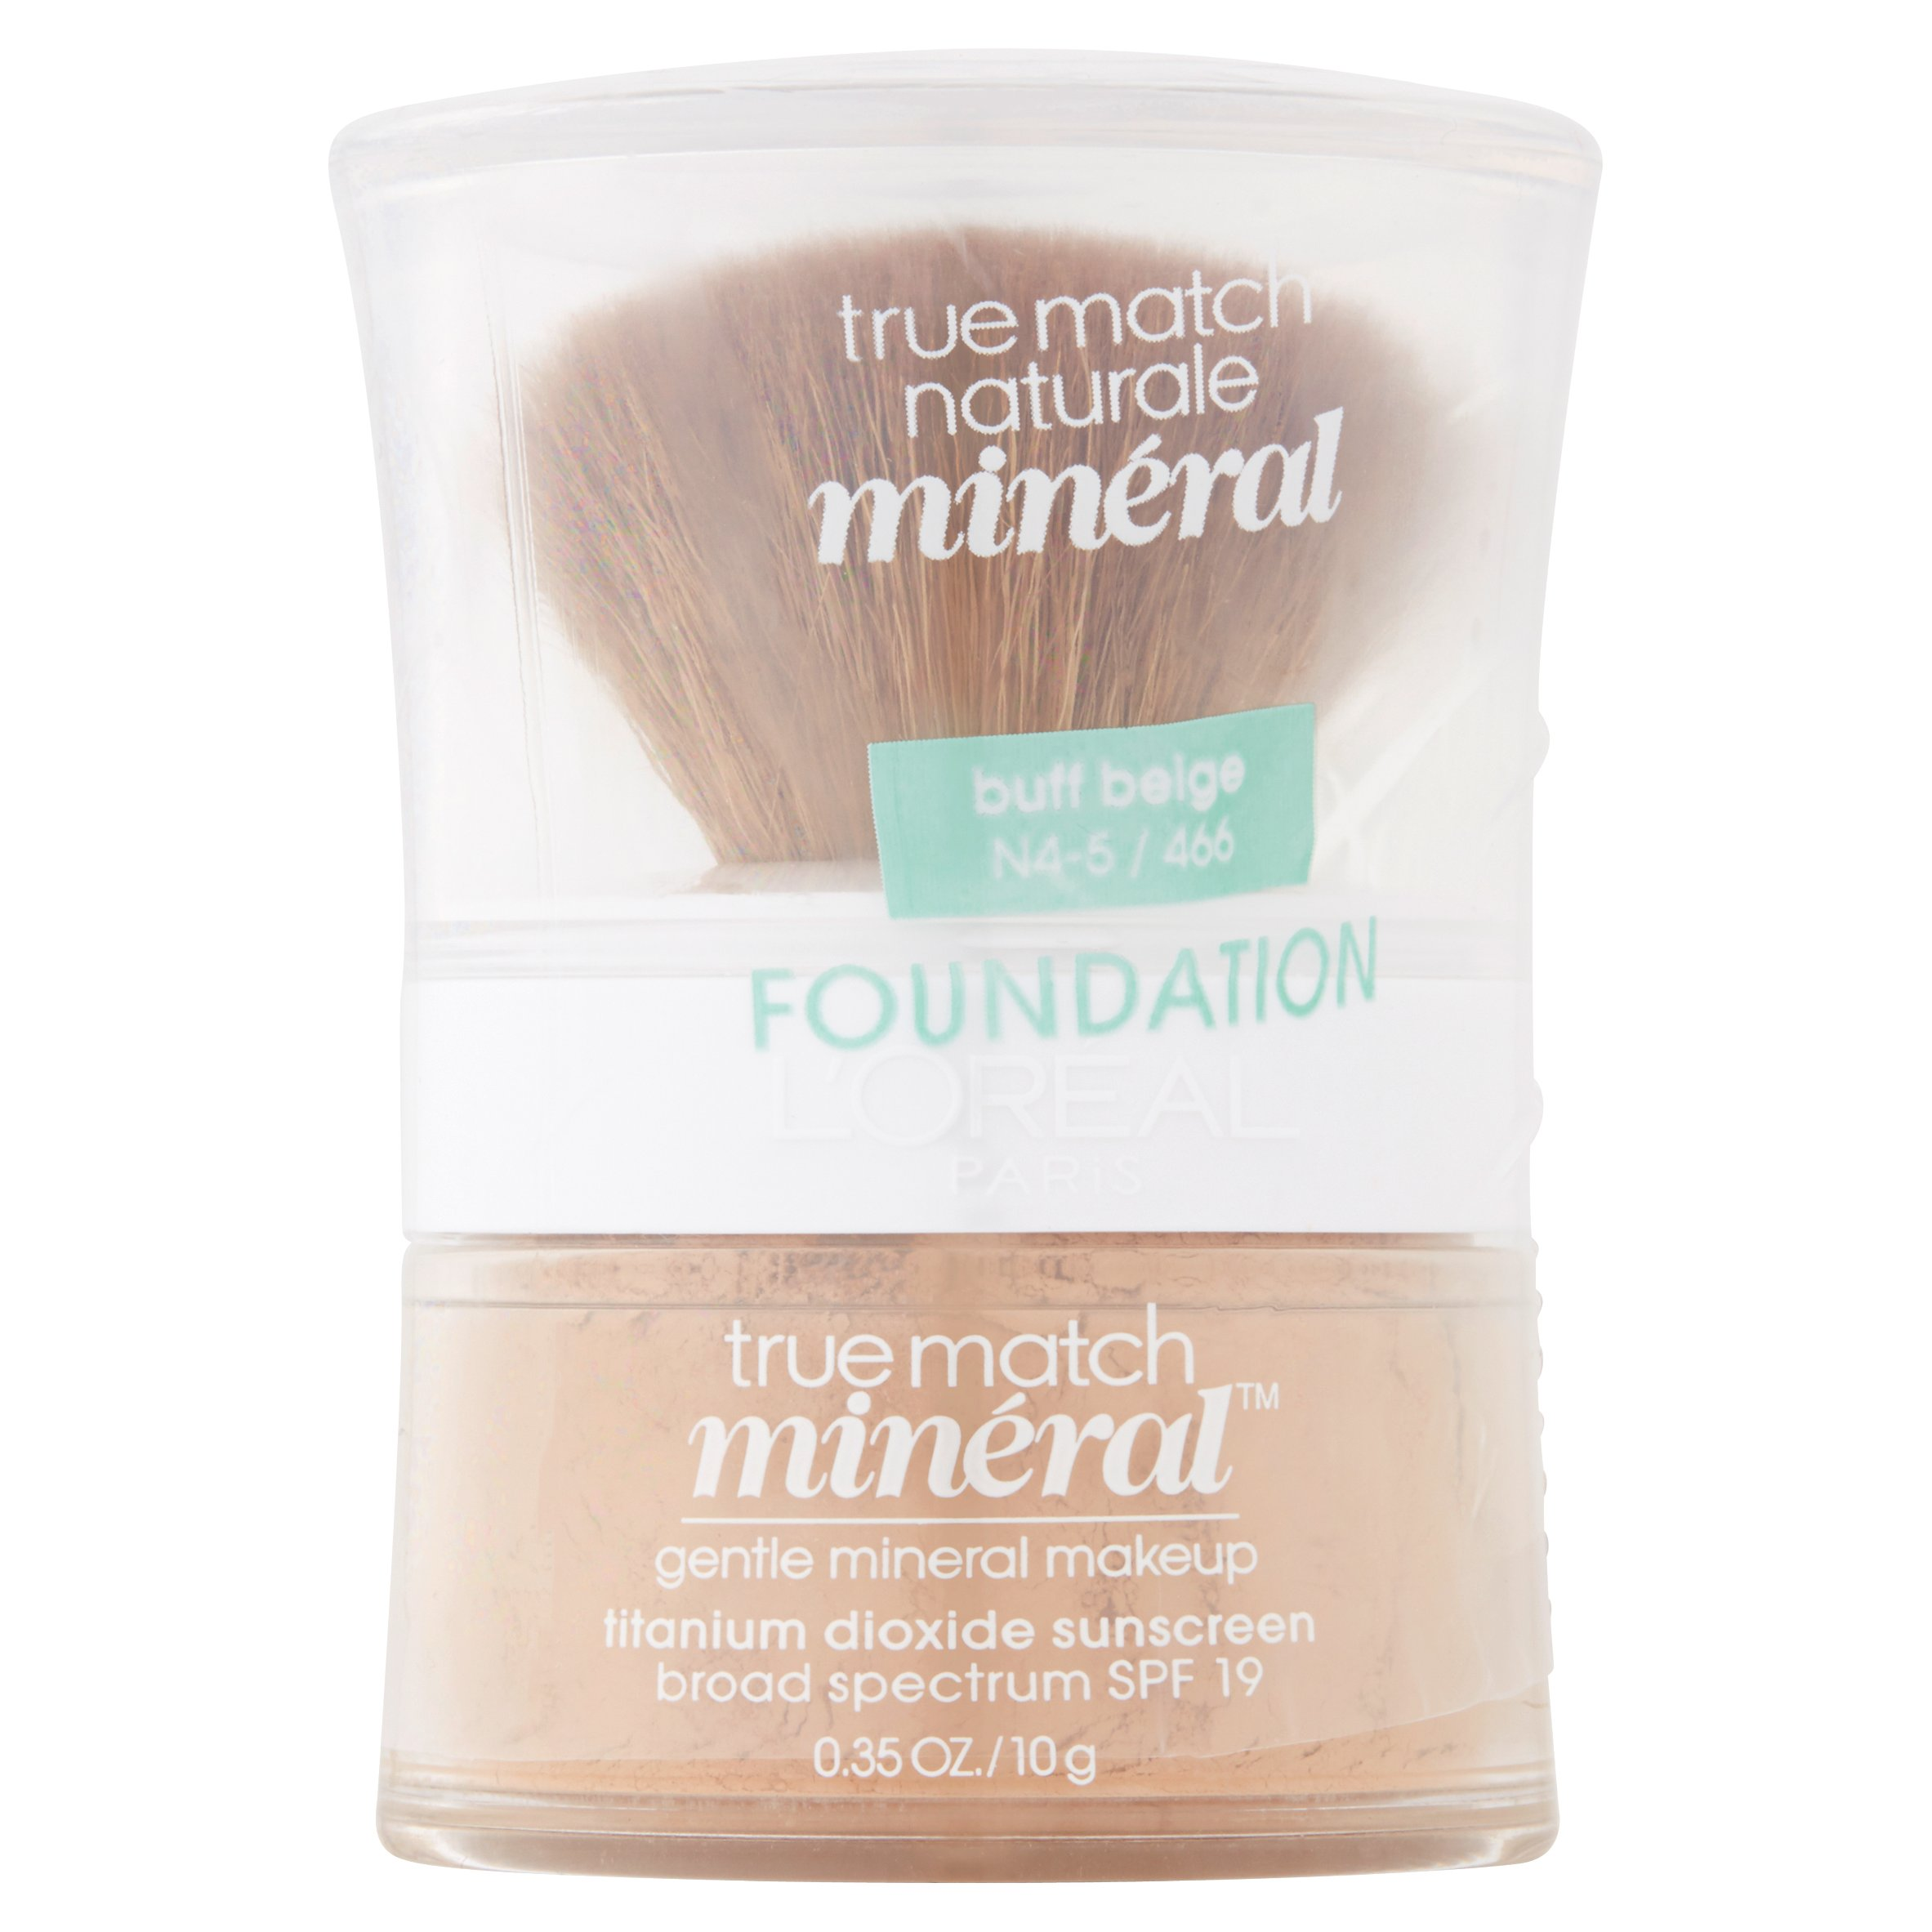 L'Oreal Paris True Match Mineral Foundation, Buff Beige